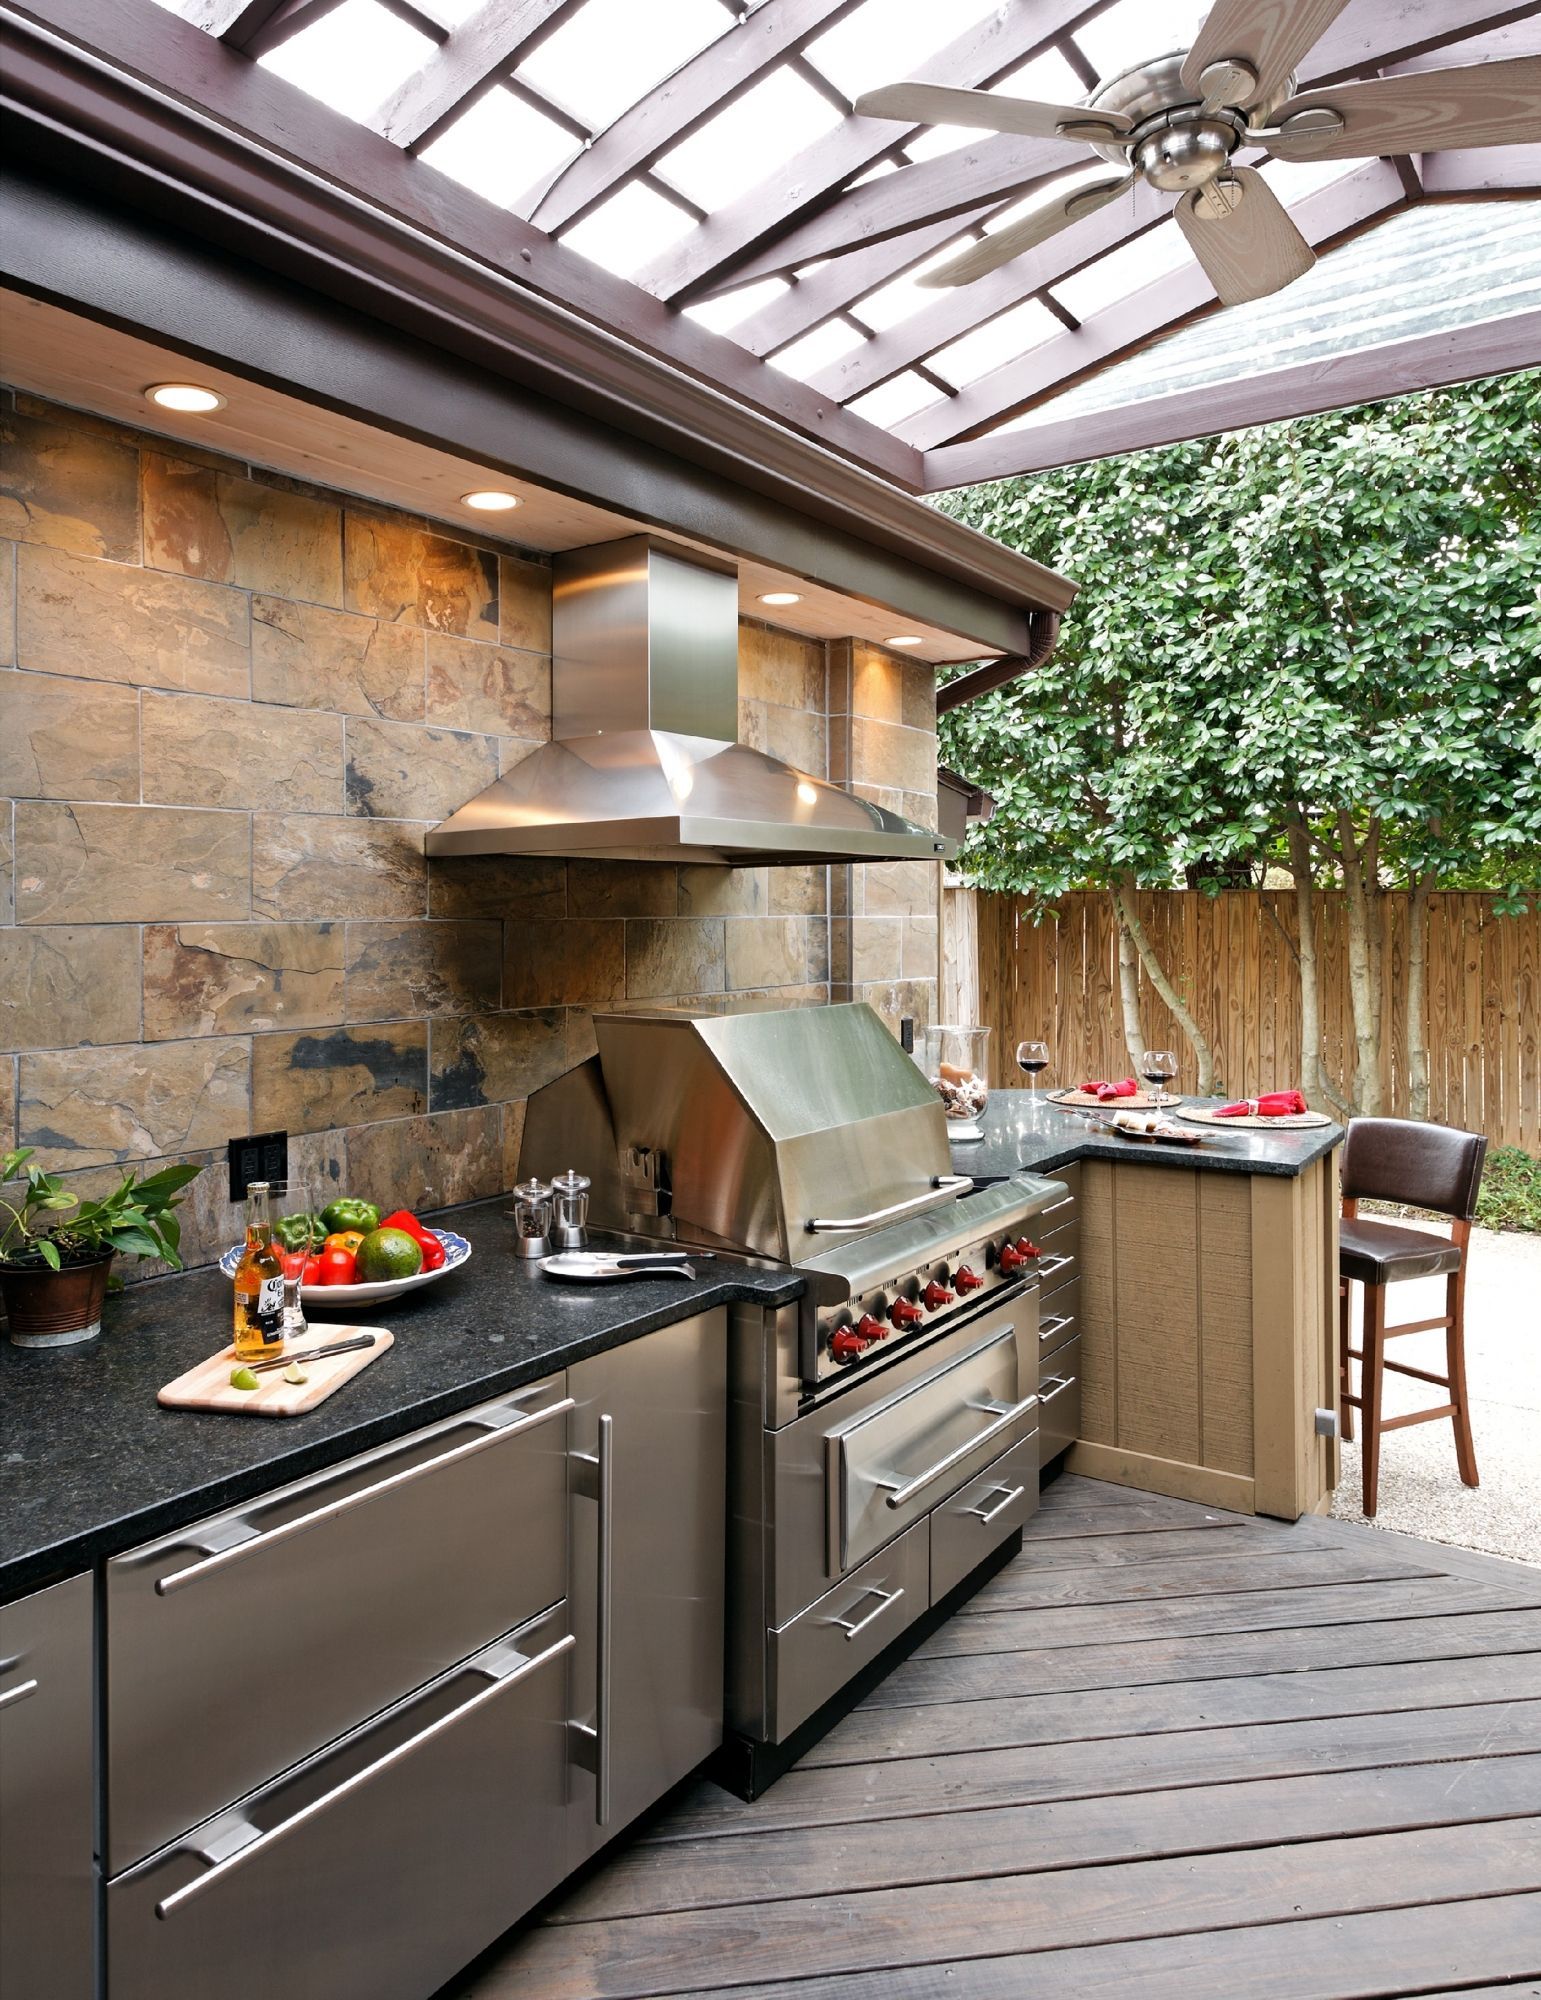 Check Out This Award Winning Outdoor Kitchen From Cultivate Com Wolfoutdoor Covered Outdoor Kitchens Outdoor Kitchen Outdoor Kitchen Appliances